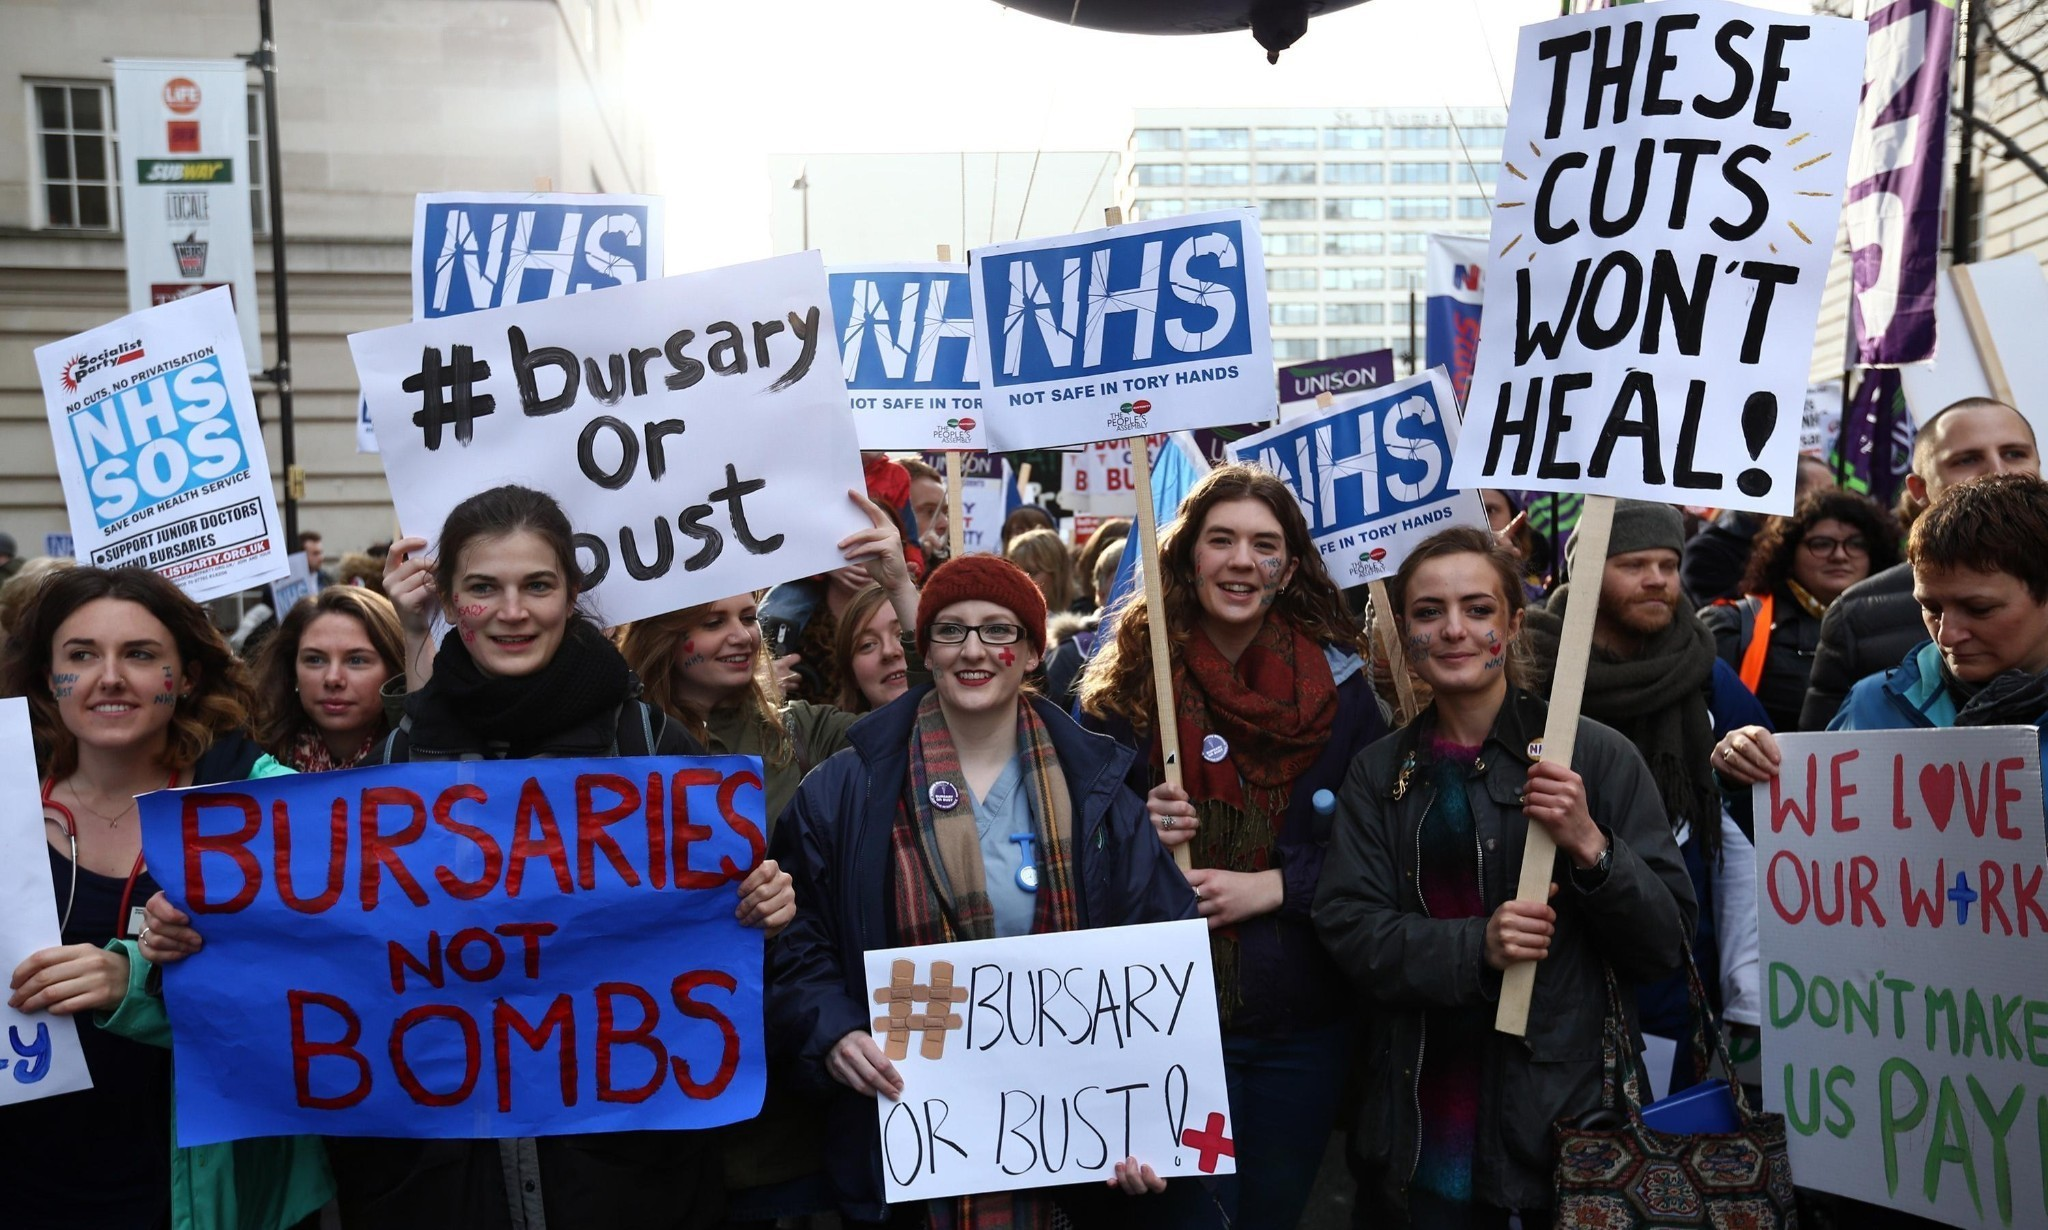 Student nurses and midwives protest over NHS bursary plans